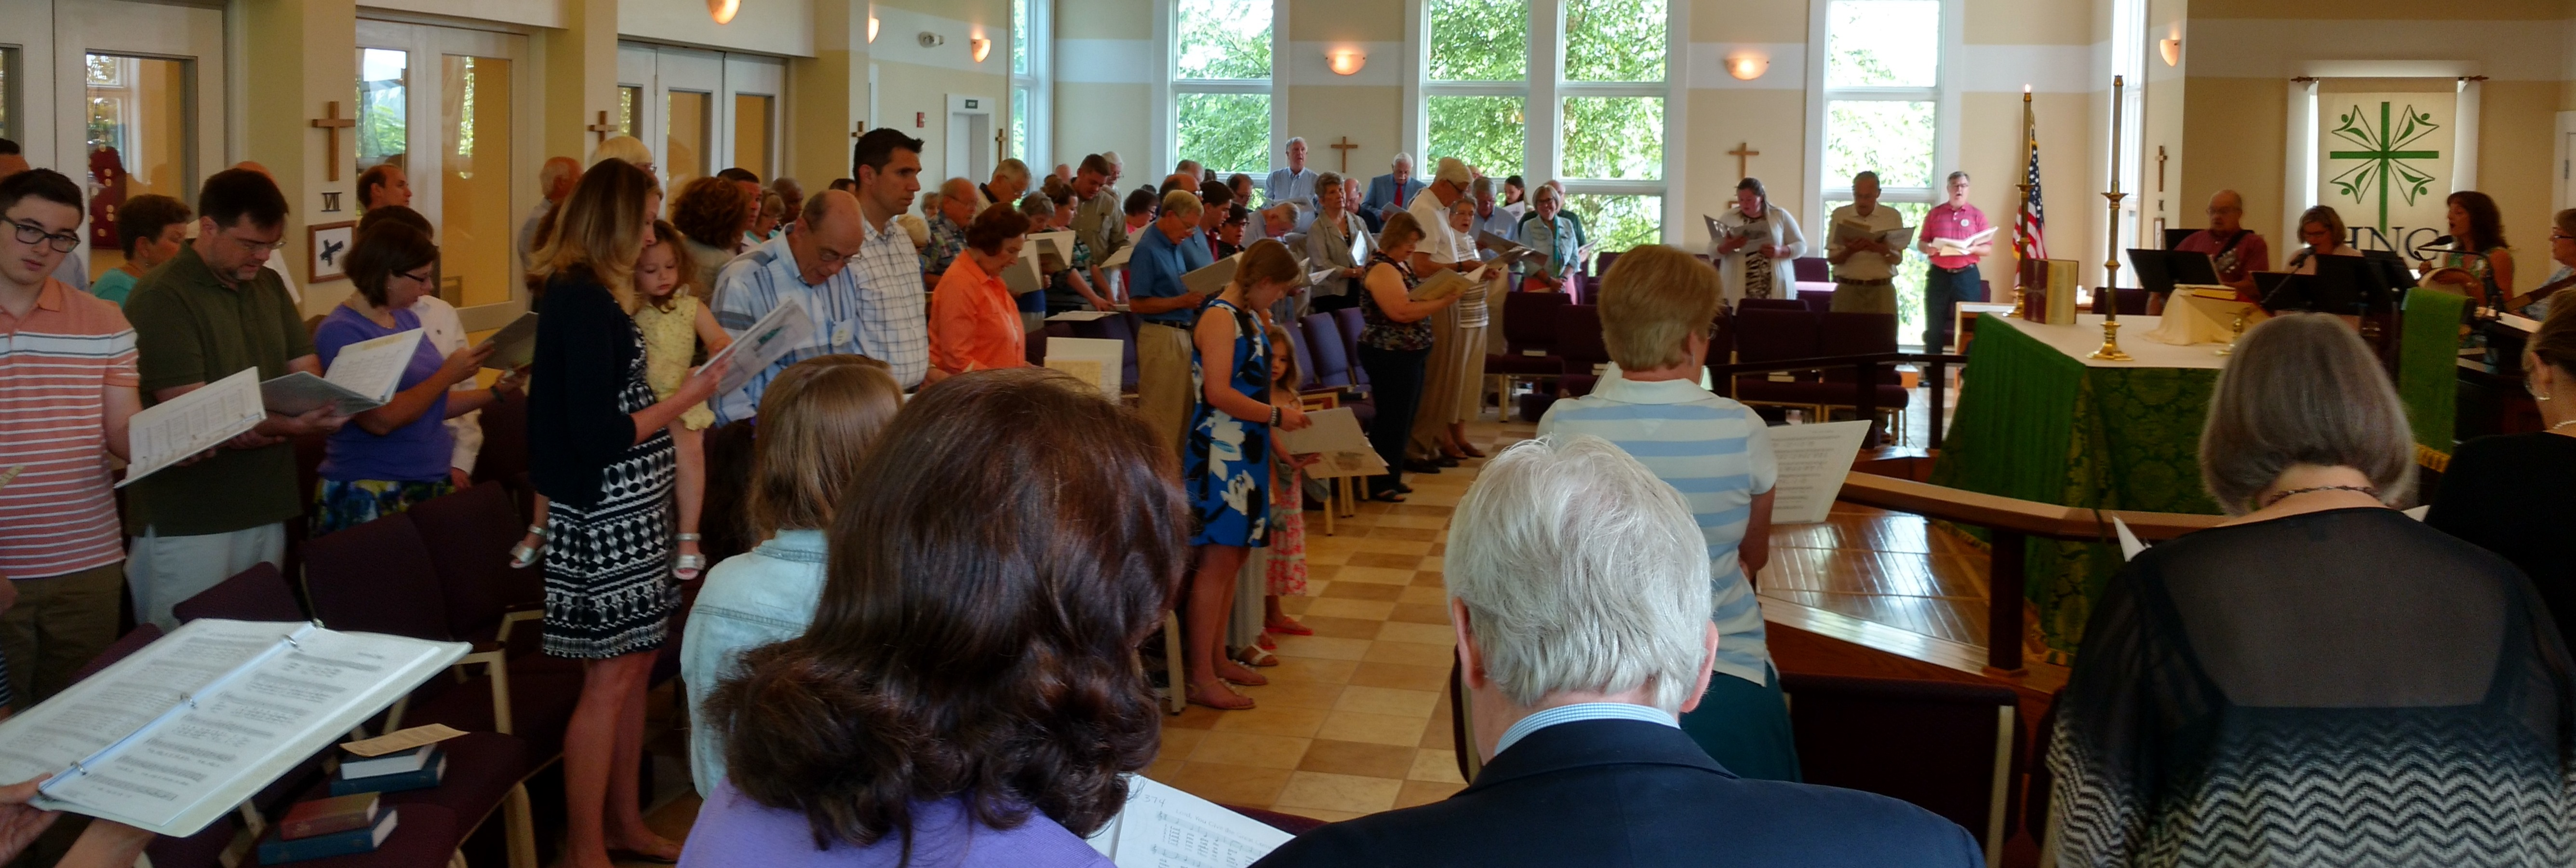 Worship service at Hickory Neck Episcopal Church, Toano, VA